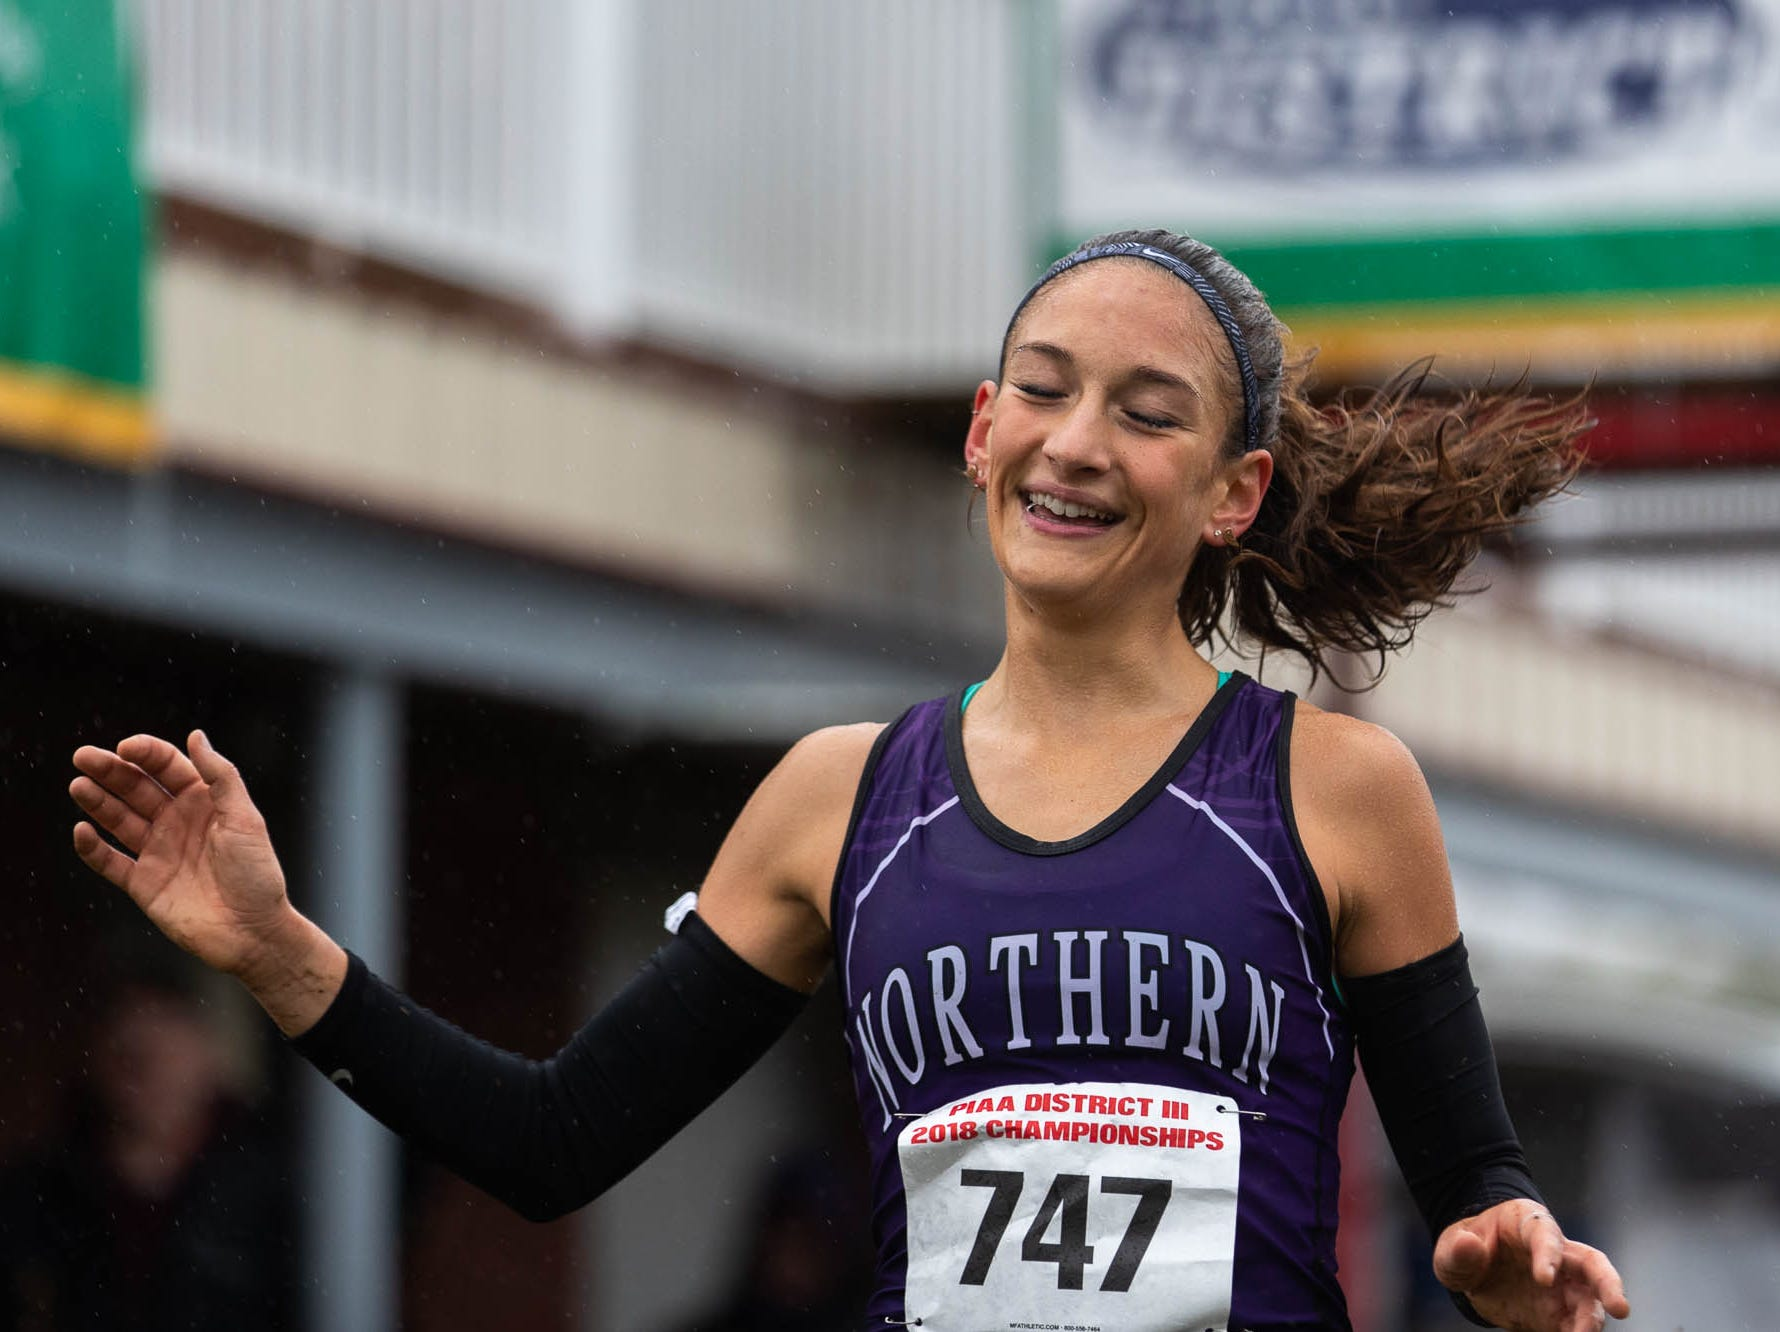 Northern's Marlee Starliper (747) smiles as she finishes first in the Girls AA race during the PIAA District III Cross Country Championship, Saturday, Oct. 27, 2018, at Big Spring High School in Newville.